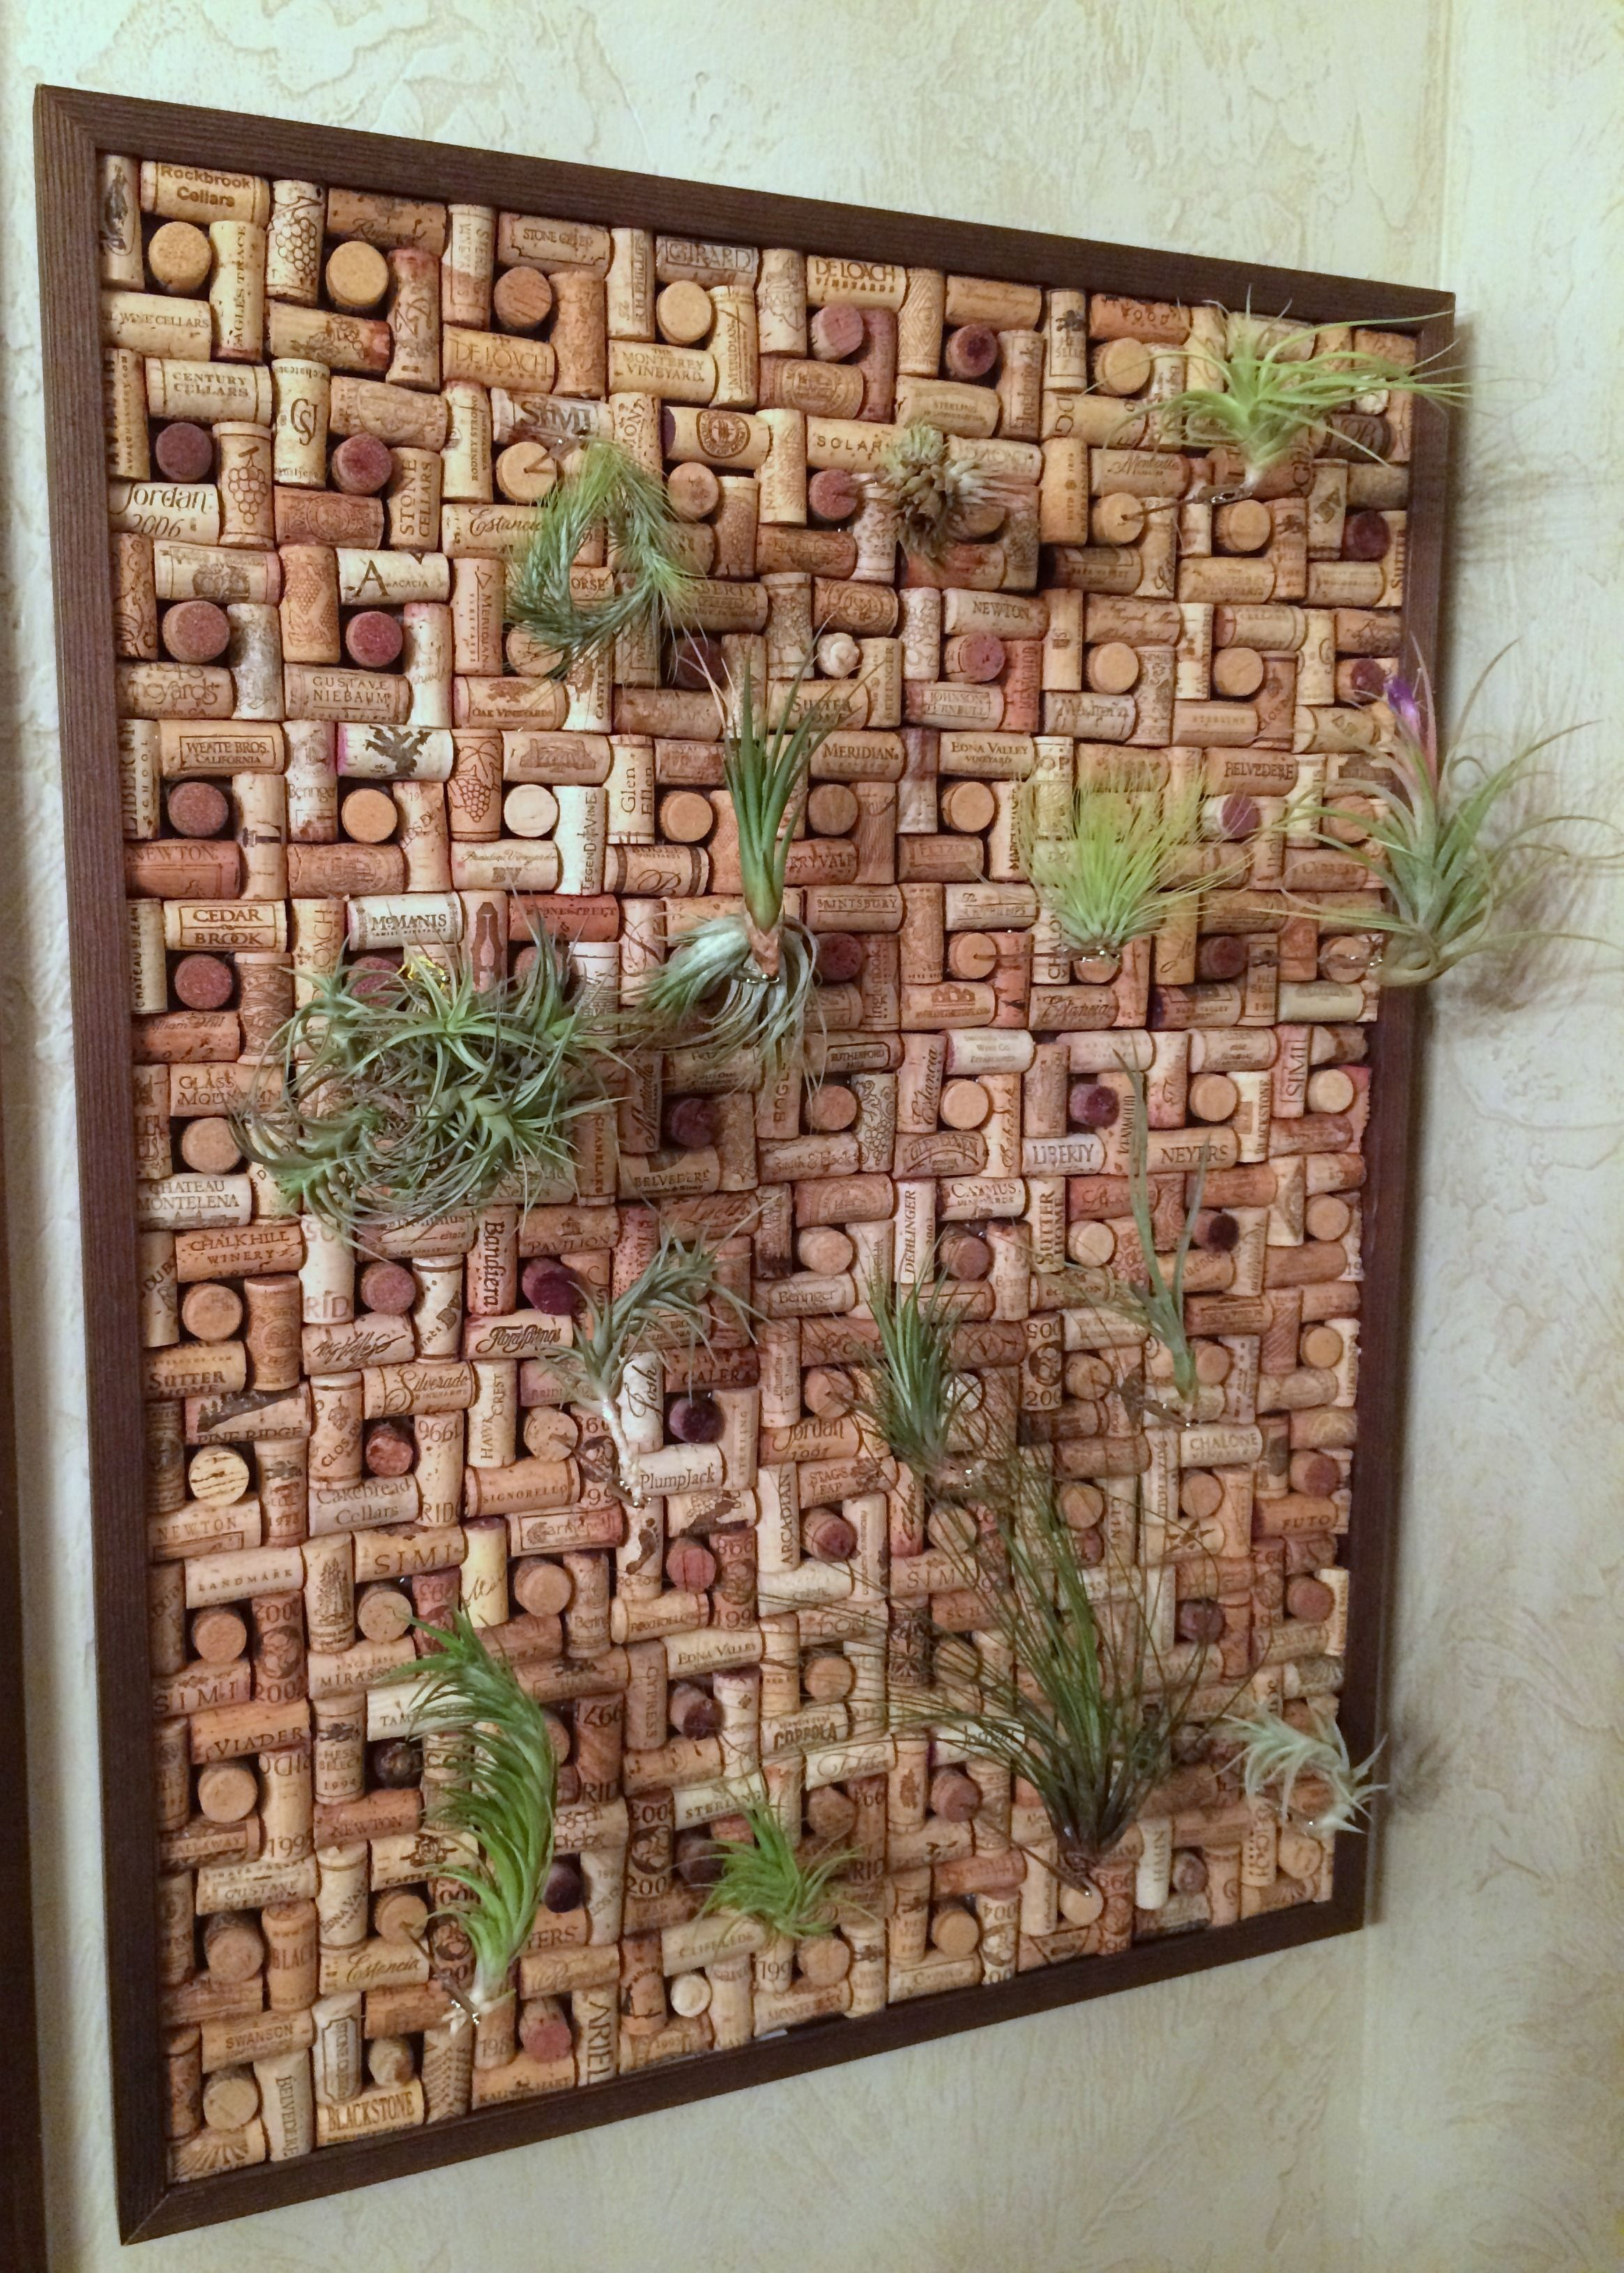 Wine Cork Project California Winery Cork Collection Air Plants 540 Corks Home Decor Wine Cork Craft Project Rolhas Cantinho